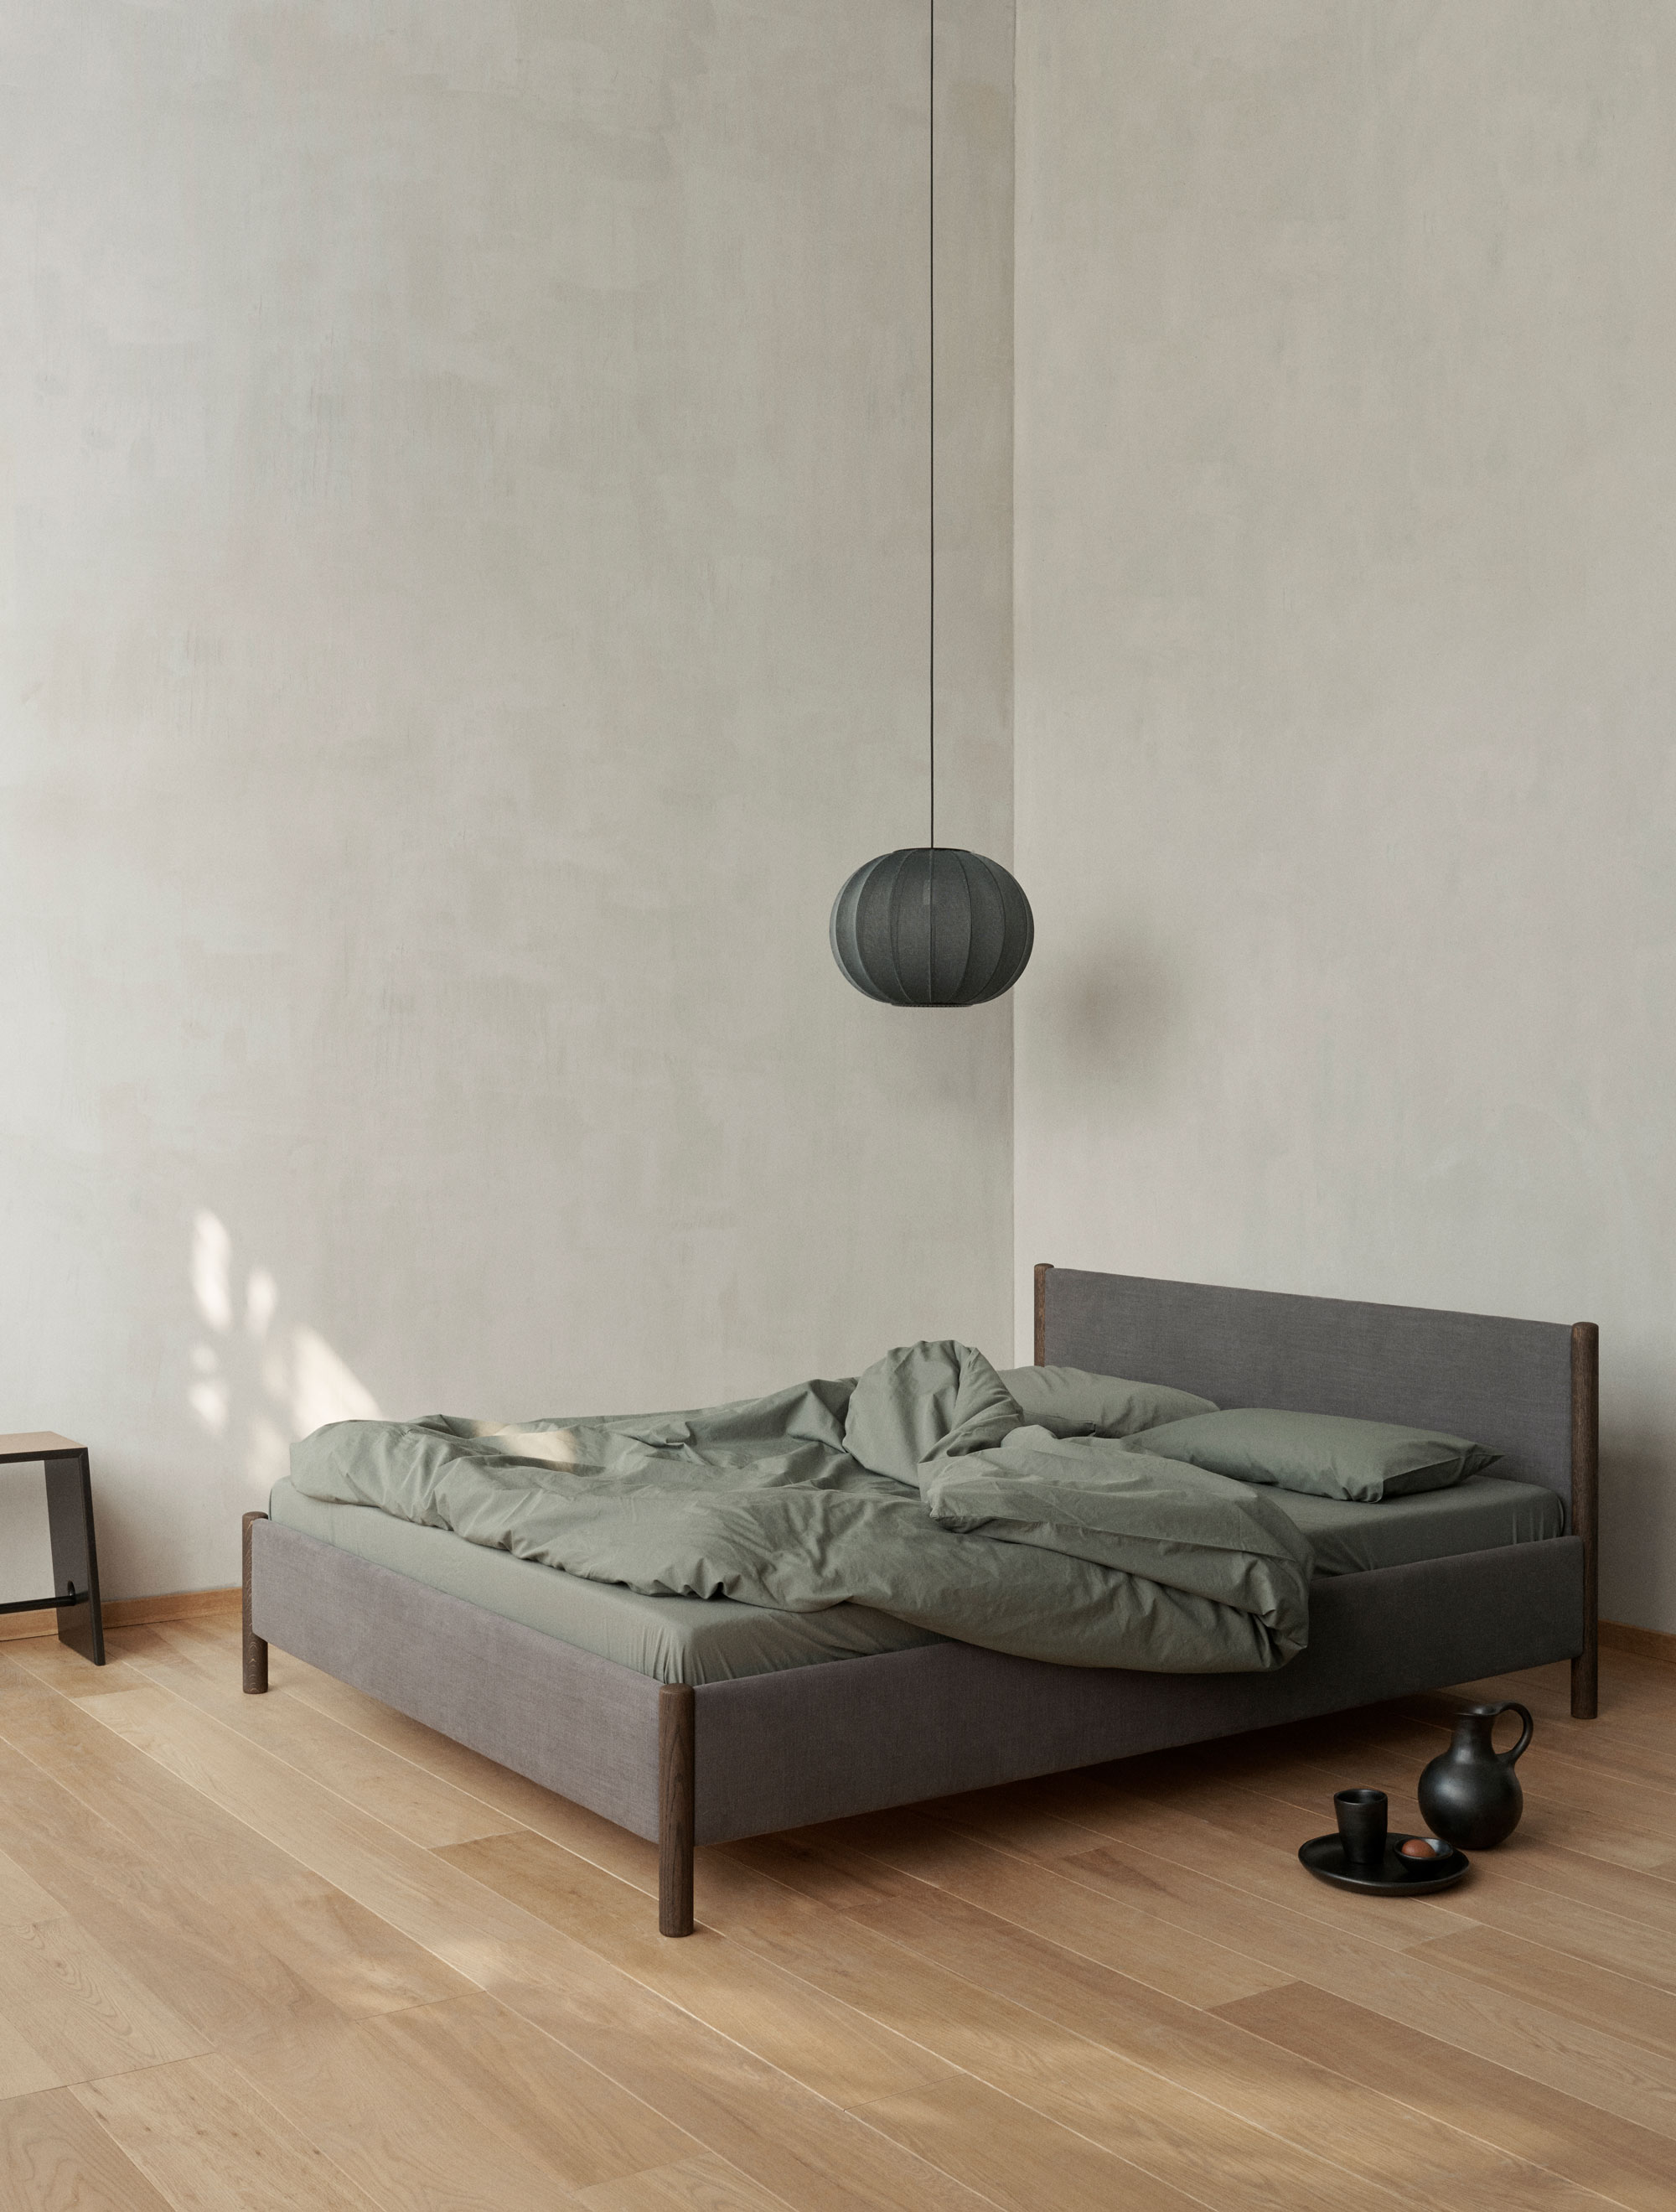 05---VENG-BED-AT-THE-LAB---RE-BEDS---DESIGN-BY-OLIVER-&-LUKAS-WEISSKROGH.jpg